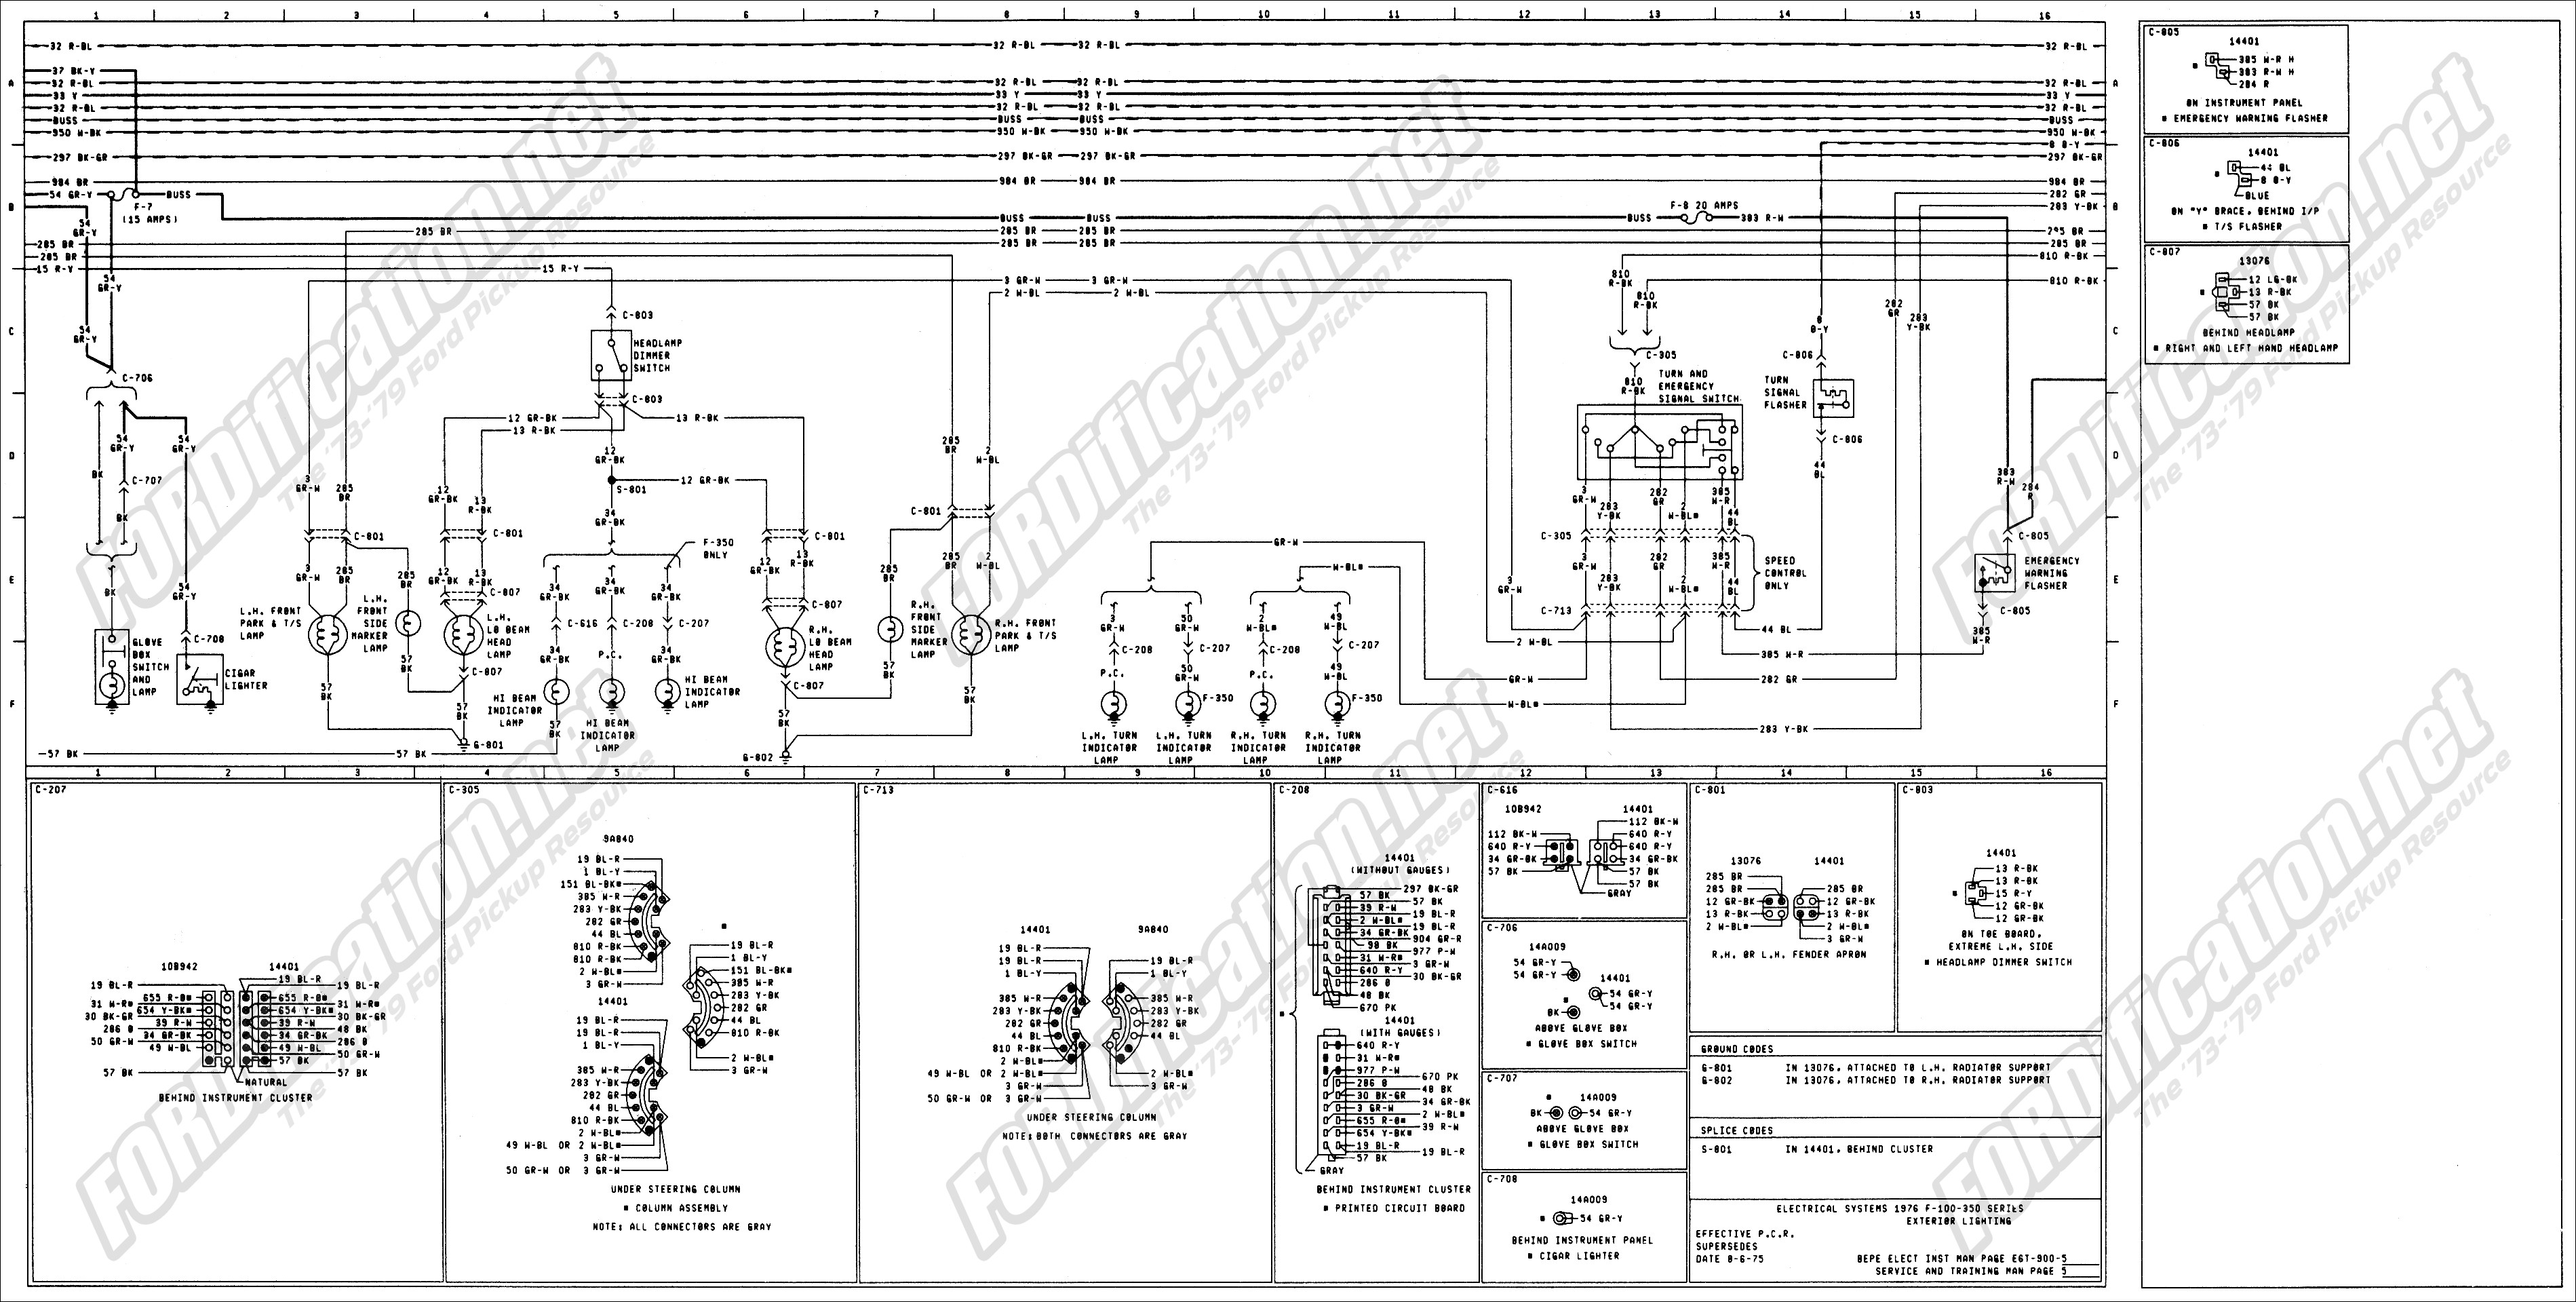 1999 ford F250 Tail Light Wiring Diagram 1973 1979 ford Truck Wiring Diagrams & Schematics Of 1999 ford F250 Tail Light Wiring Diagram